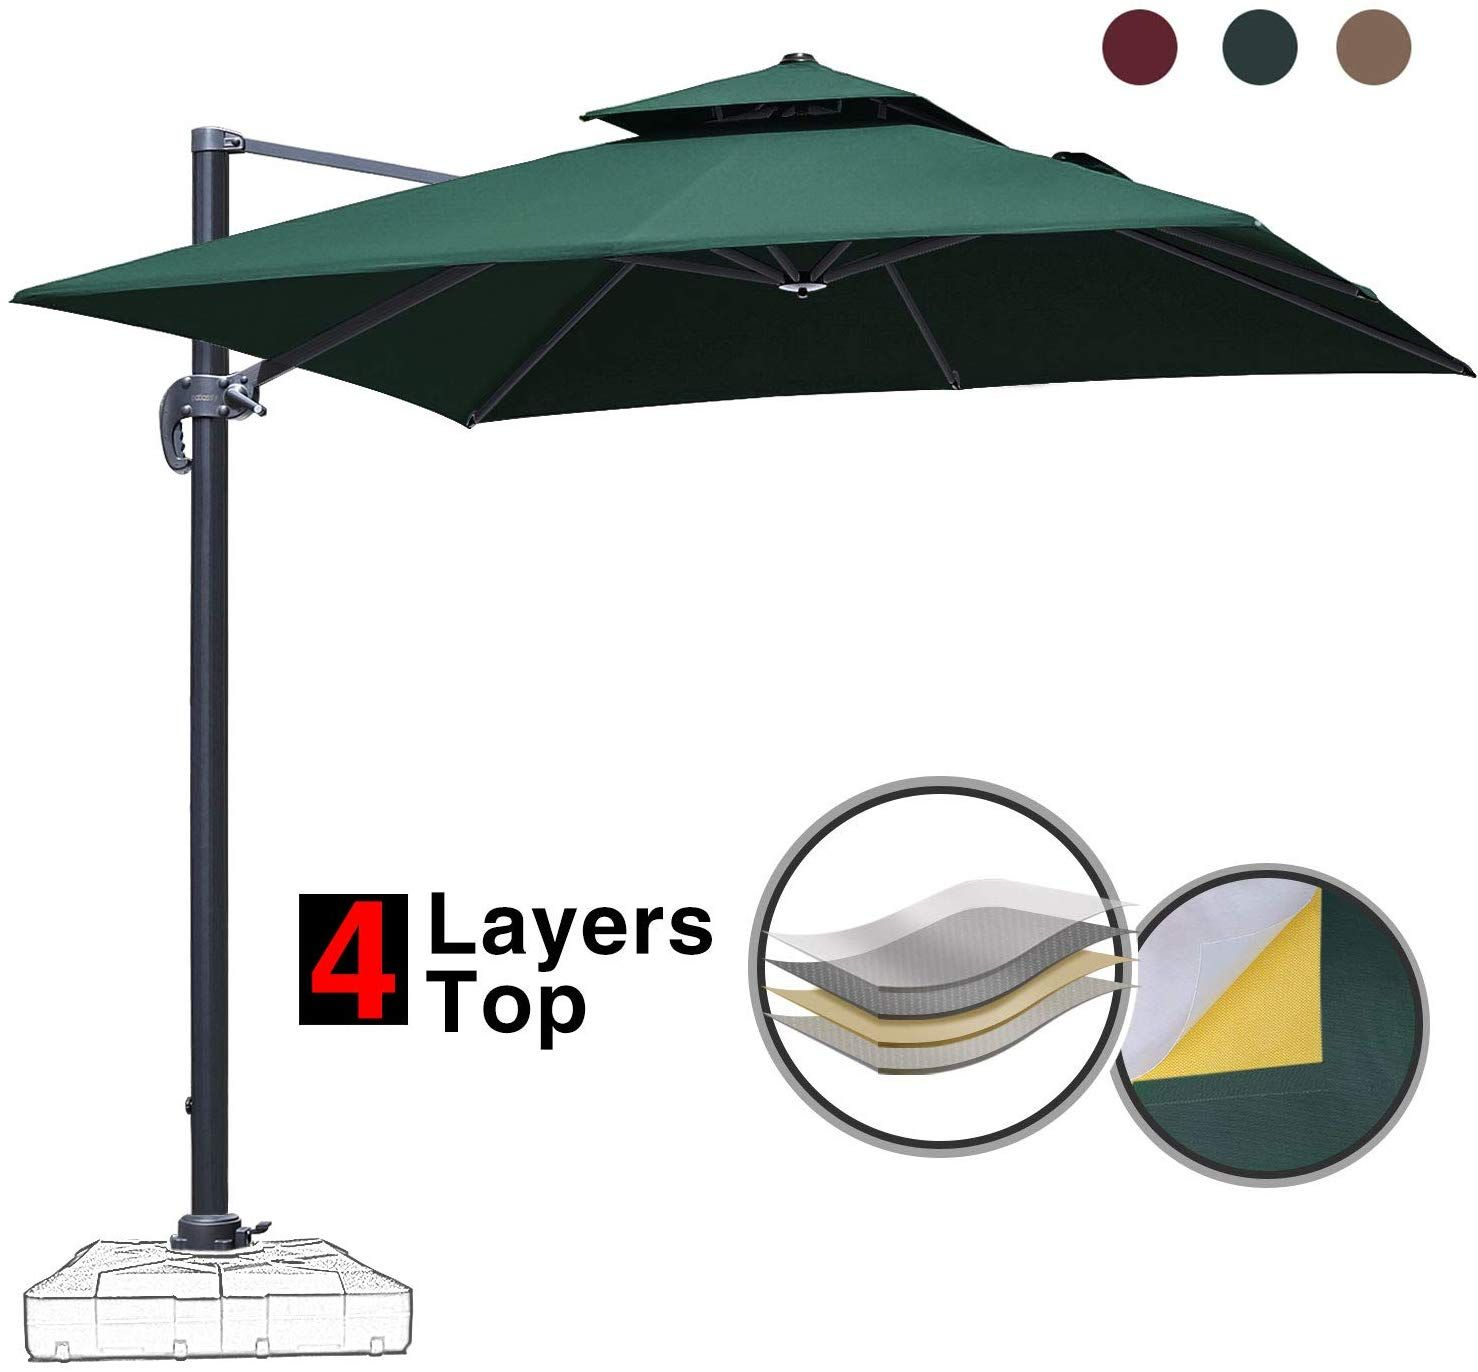 Patiassy 10 Feet Double Top Square Patio Umbrella Offset Hanging Umbrella Outdoor Market Garden Cant Patio Umbrella Cantilever Umbrella Outdoor Patio Umbrellas